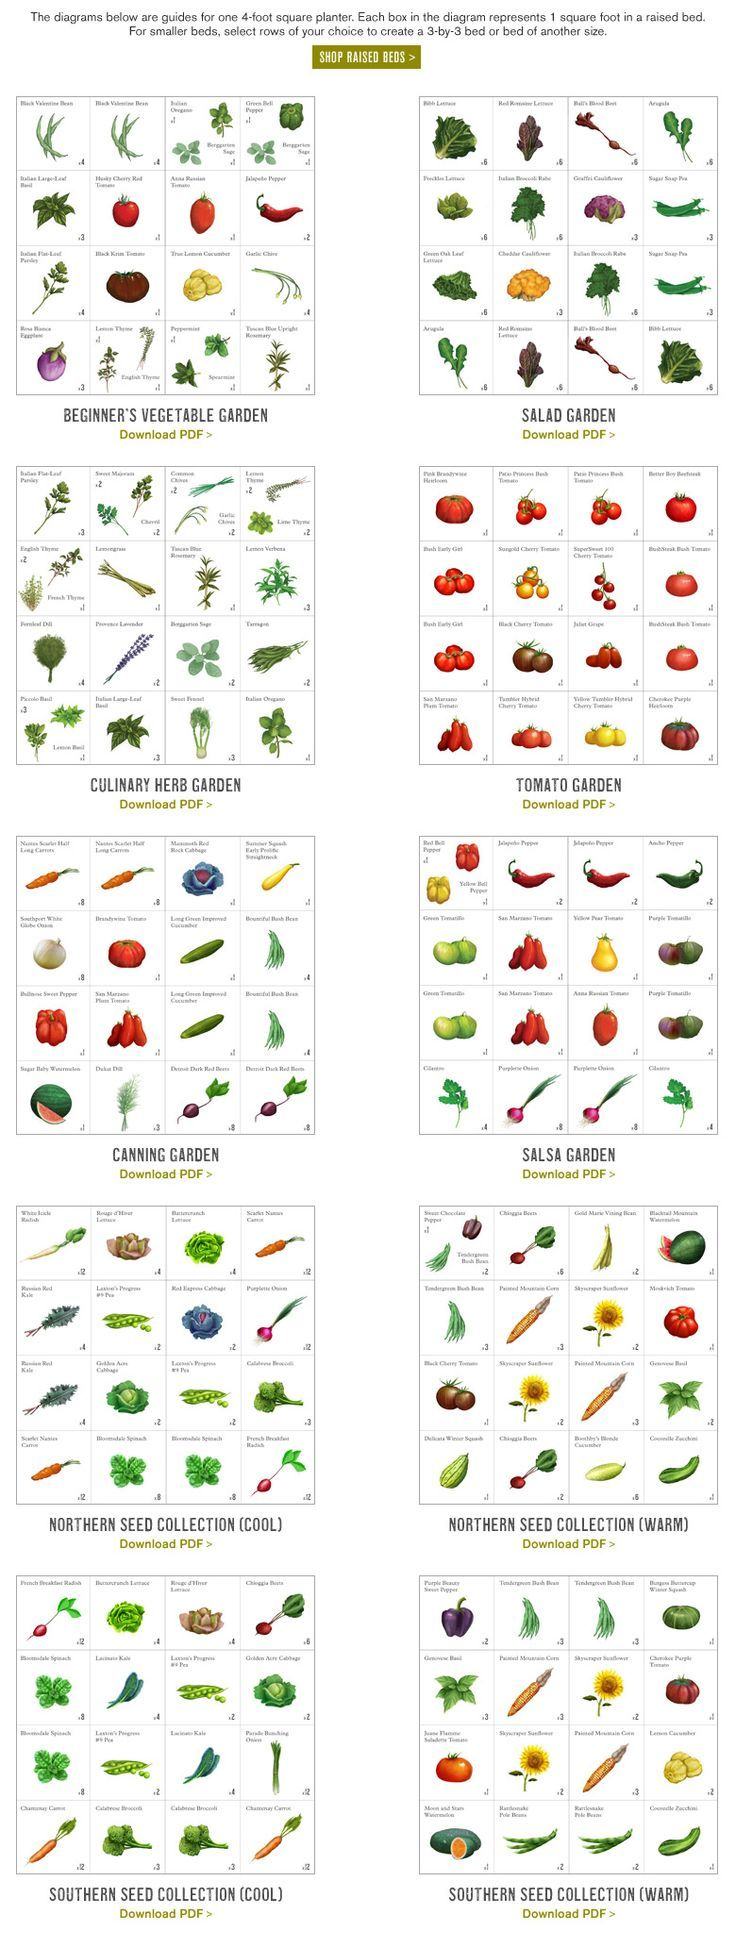 Raised bed vegetable garden layout plans - Get Gardening 10 Square Foot Garden Ideas And Tips Vegetable Garden Layouts Small Vegetable Gardens And Raised Bed